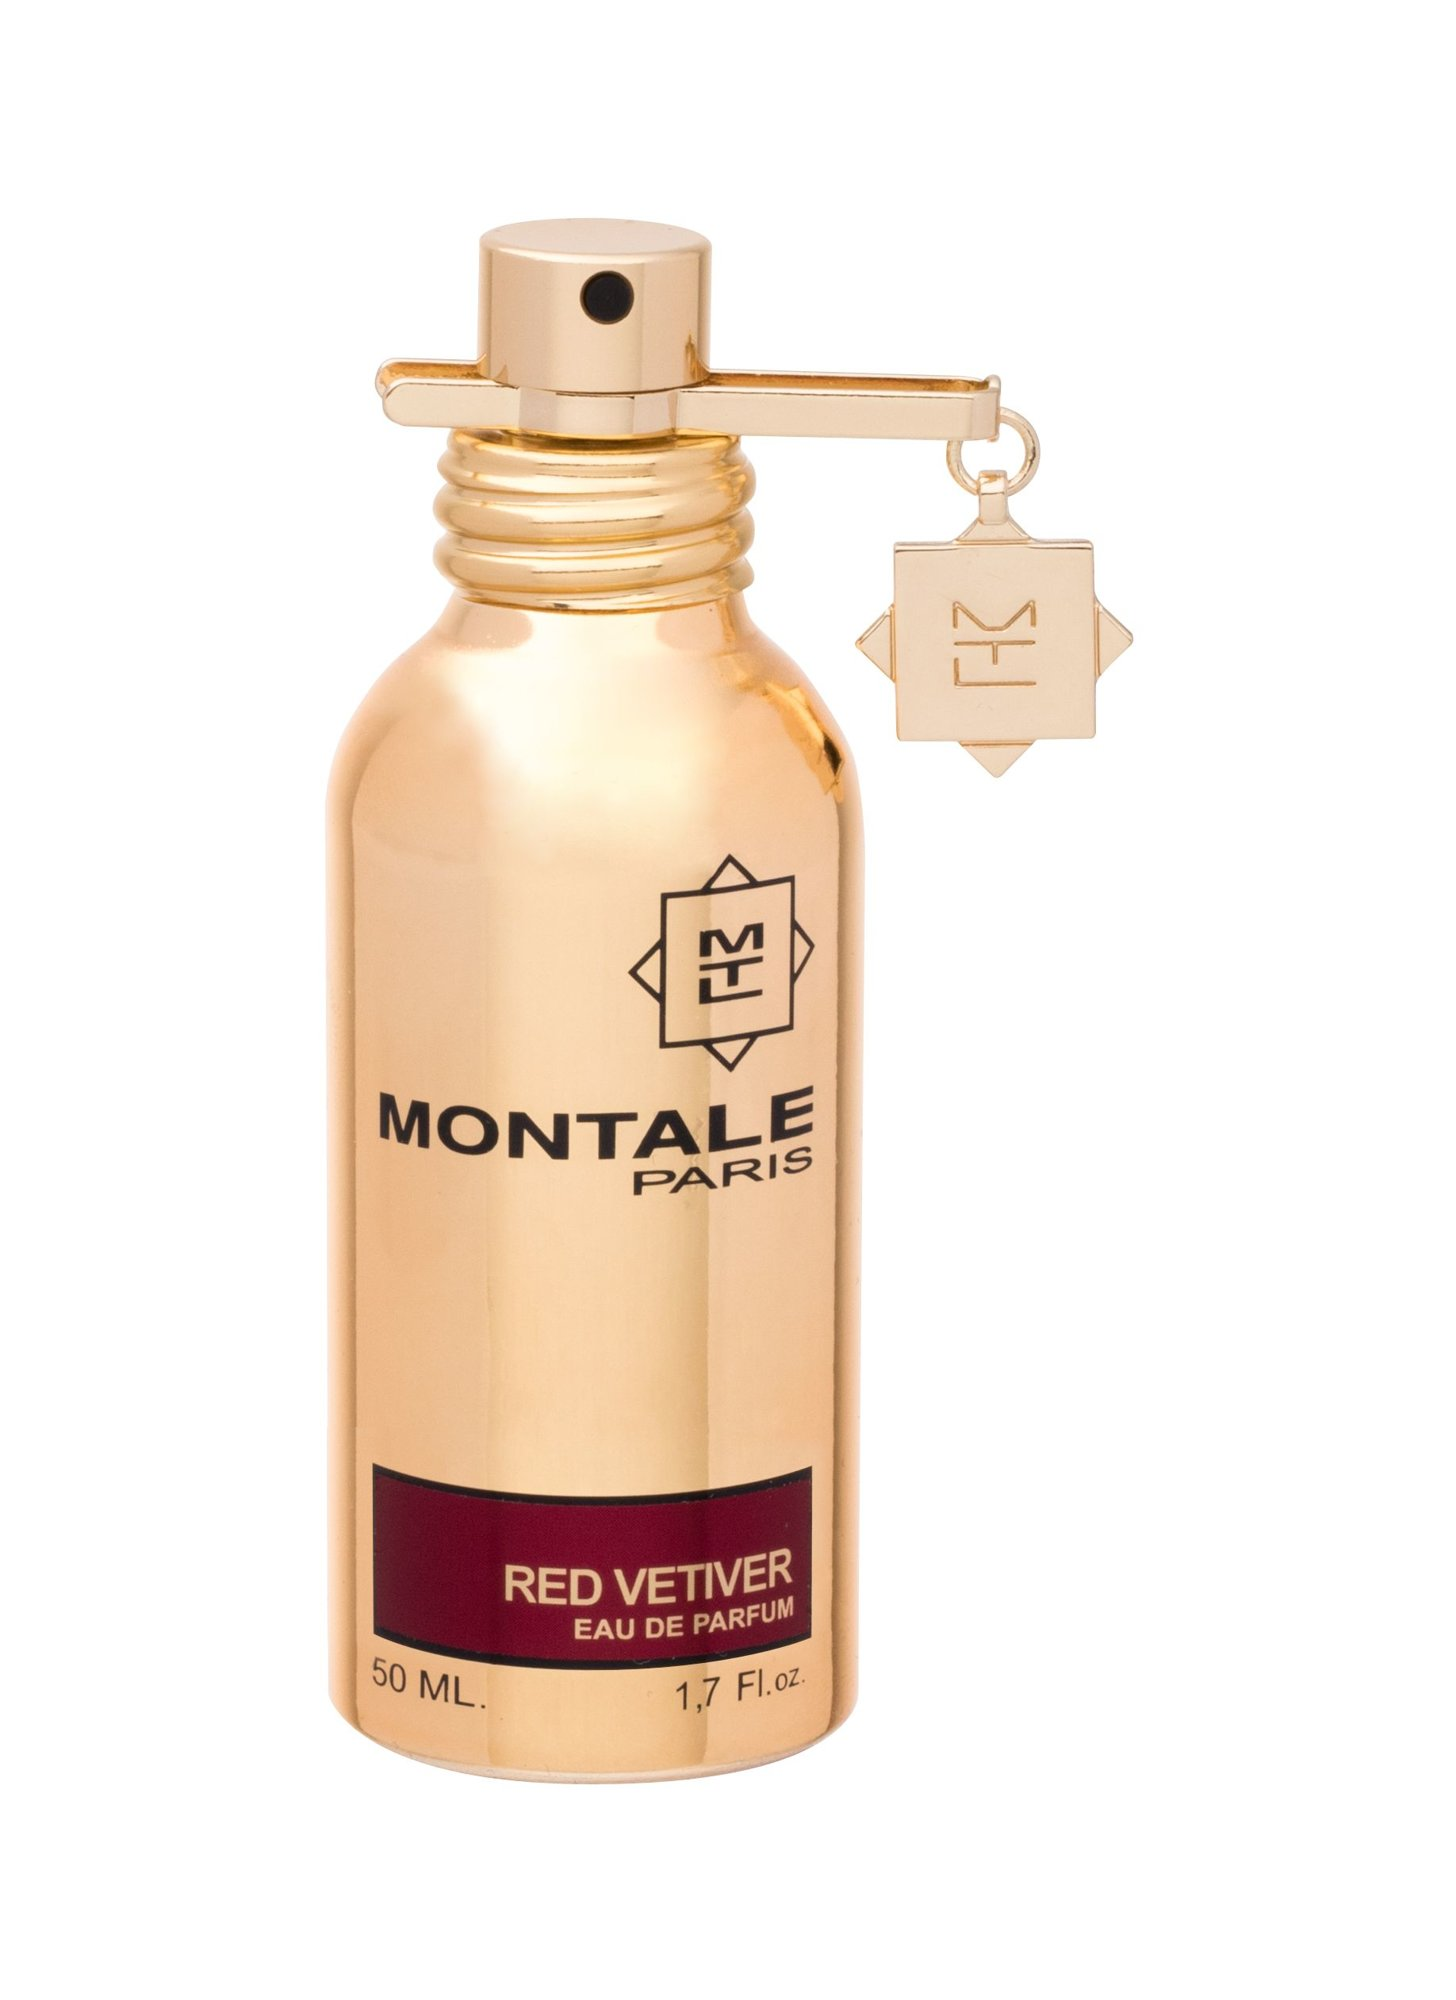 Montale Paris Red Vetyver EDP 50ml